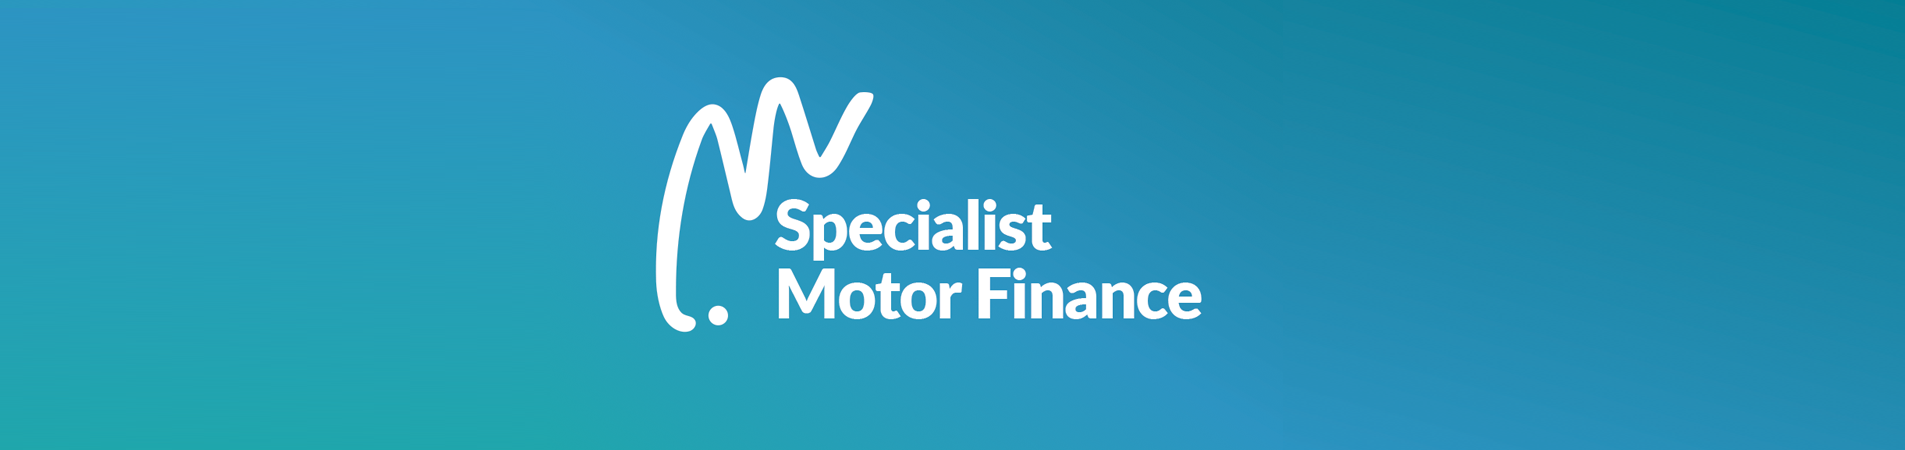 New website launch for motor finance company